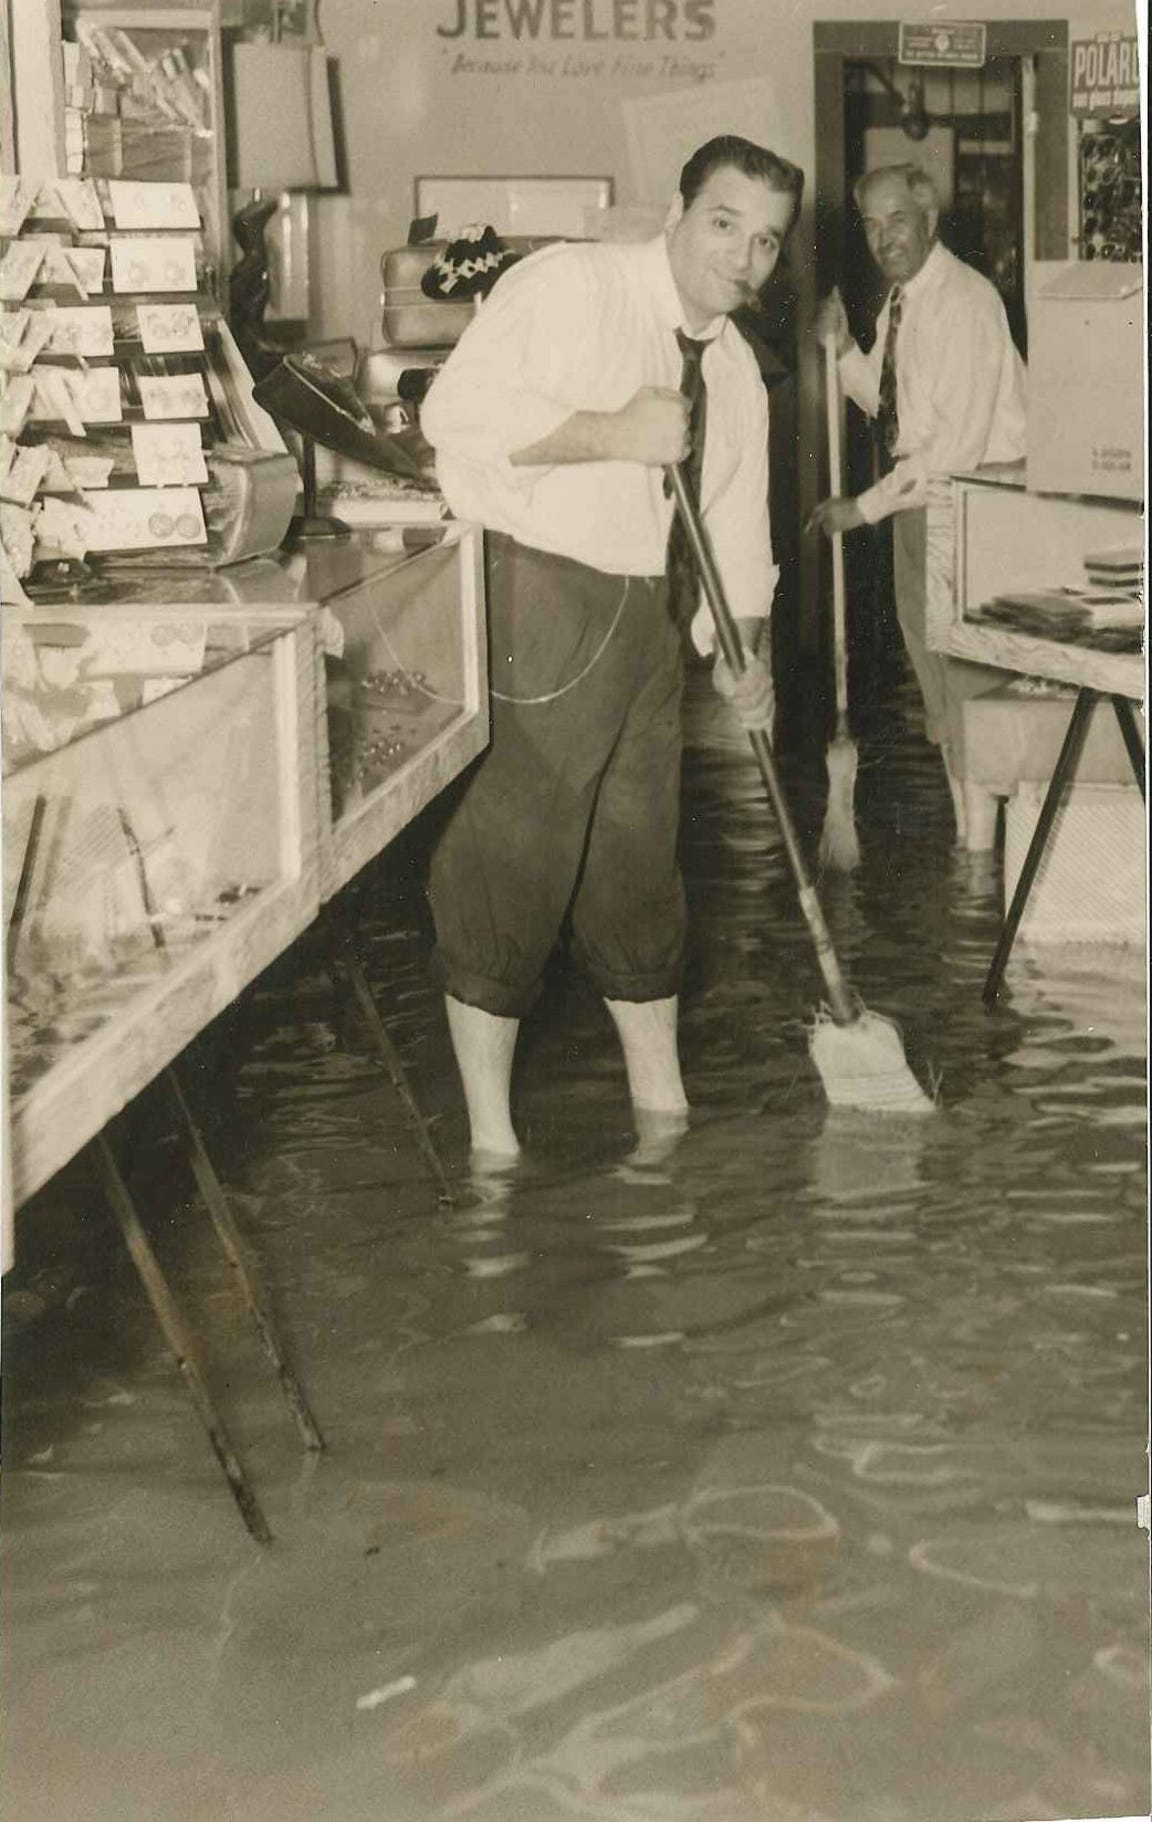 Joe Salem (foreground) and Henry Villasenor sweep water out of Salem's Jewelry Store at 310 North Chaparral in downtown Corpus Christi following heavy rainfall on April 24, 1956.